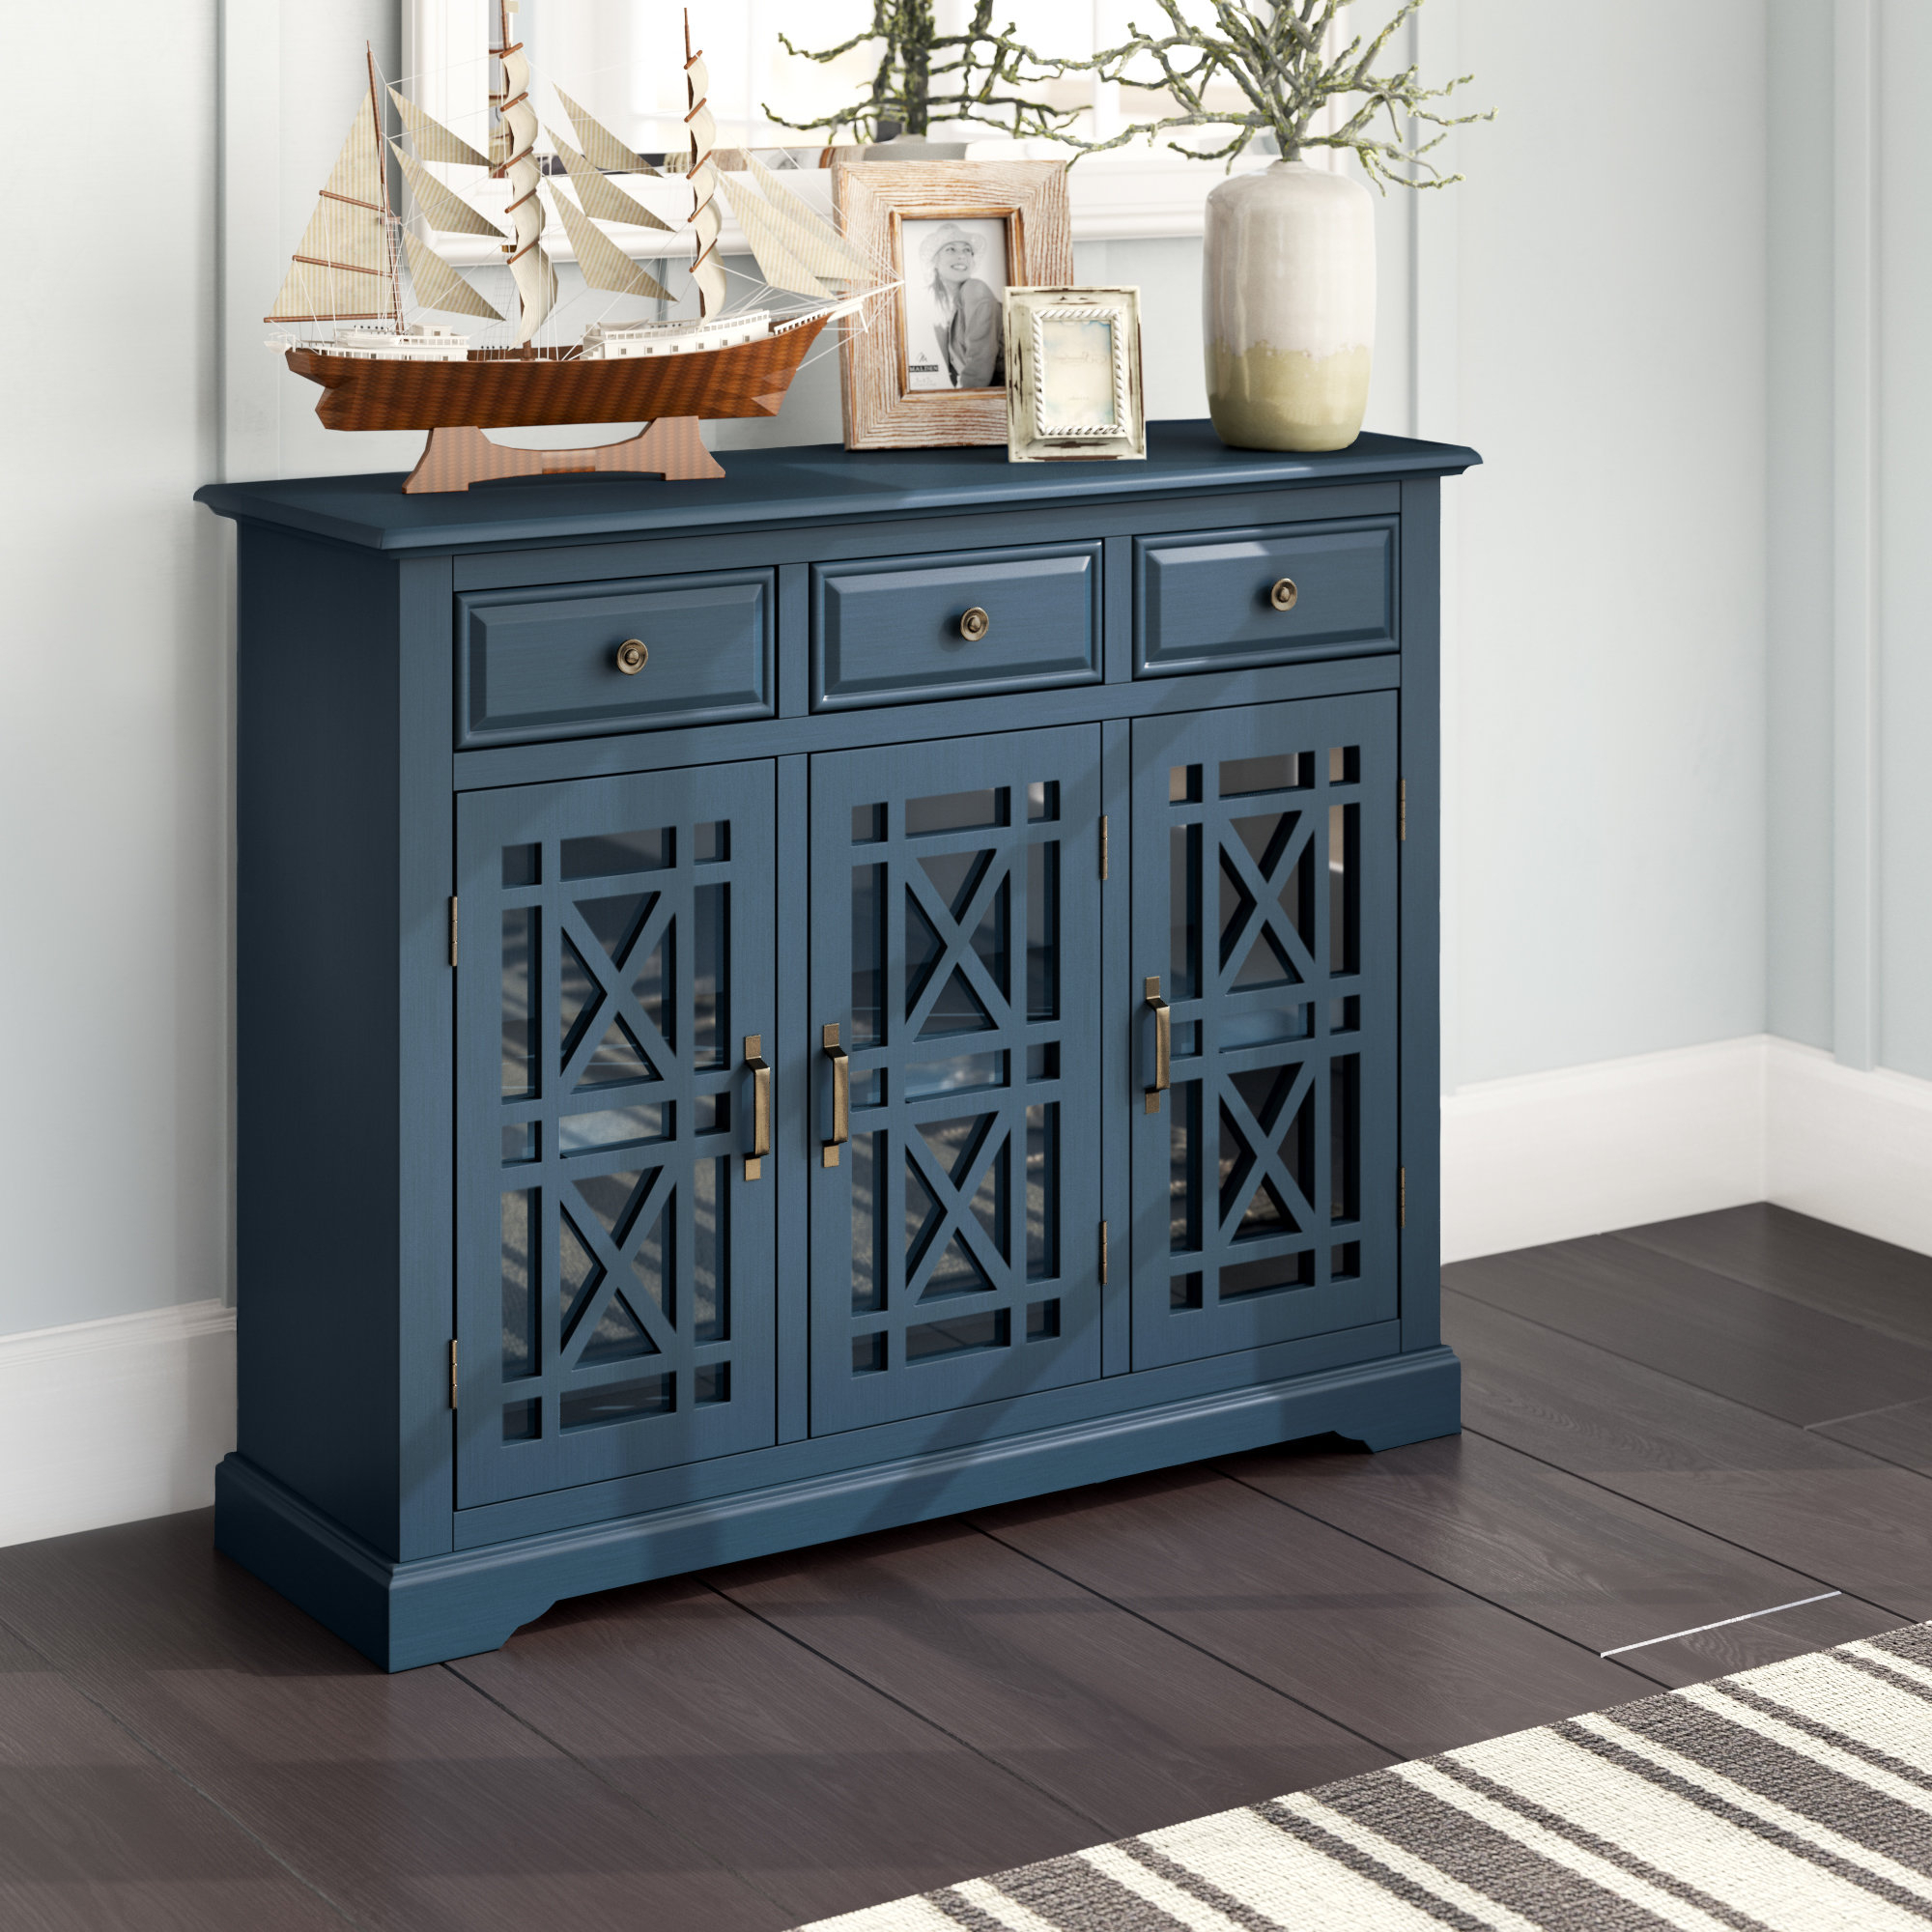 Sideboards & Buffet Tables You'll Love In 2019 | Wayfair With Regard To Longley Sideboards (View 13 of 20)